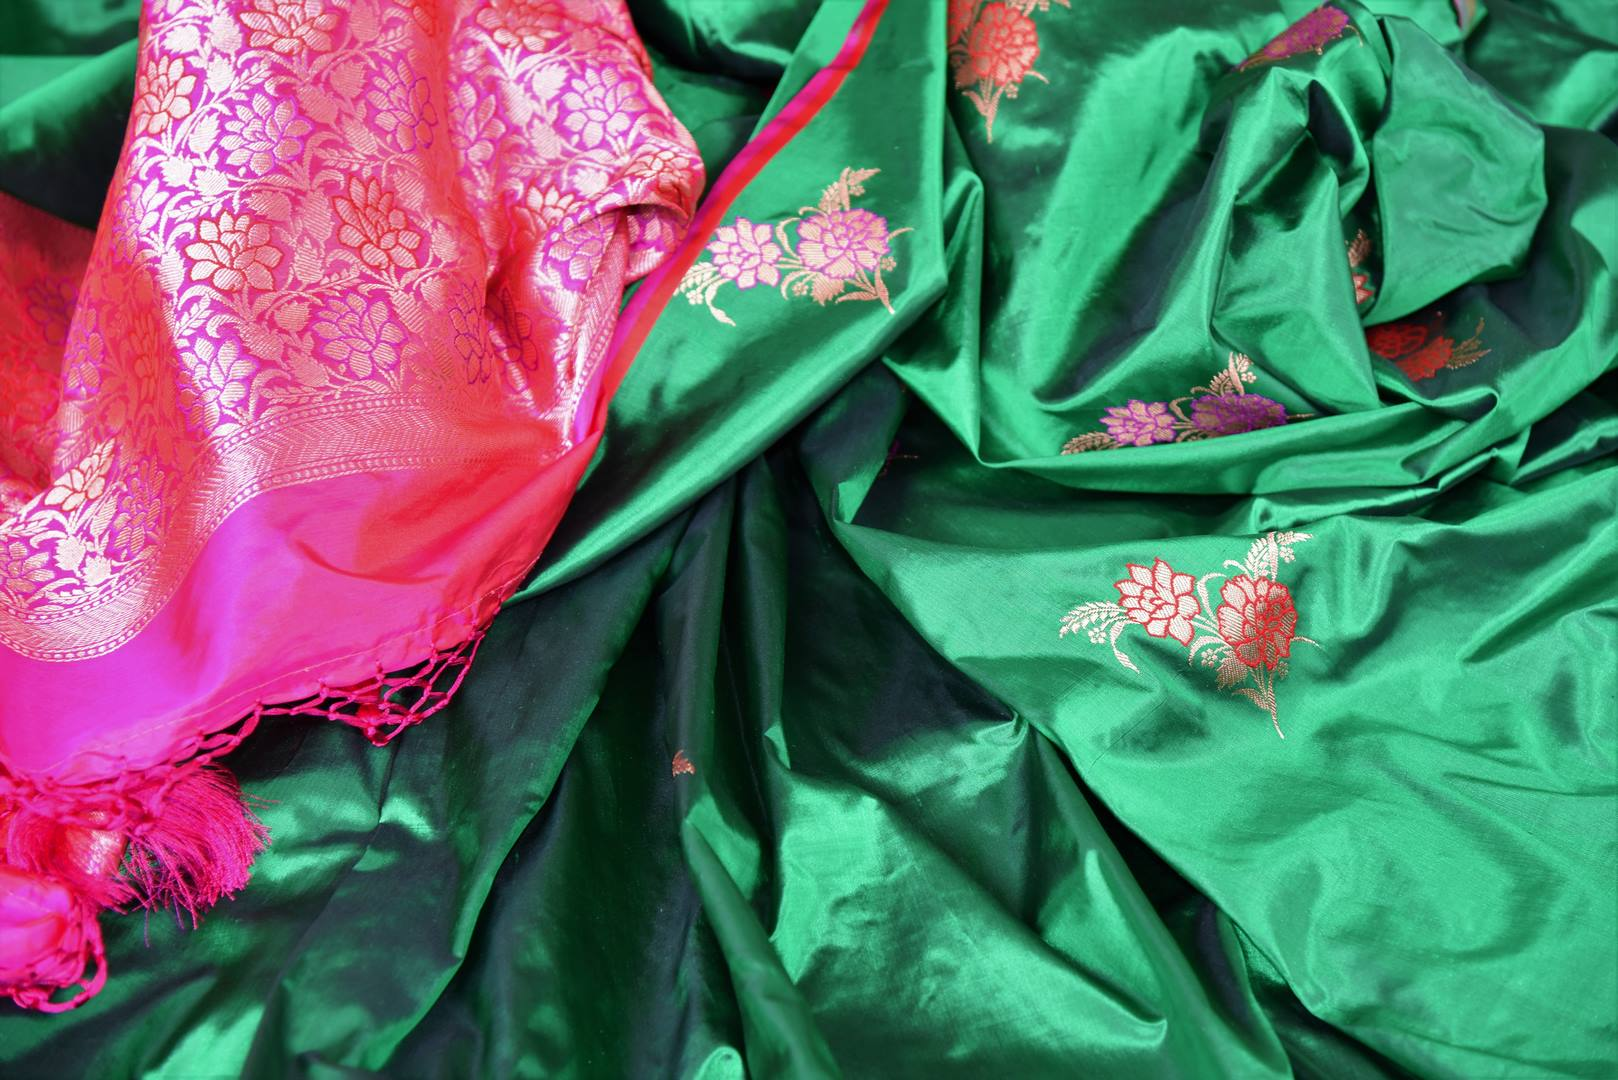 Shop green Banarasi silk sari online in USA with minakari zari floral buta. Be a vision in the beautiful Banarasi silk saris from Pure Elegance Indian clothing store in USA. Shop online now.-details